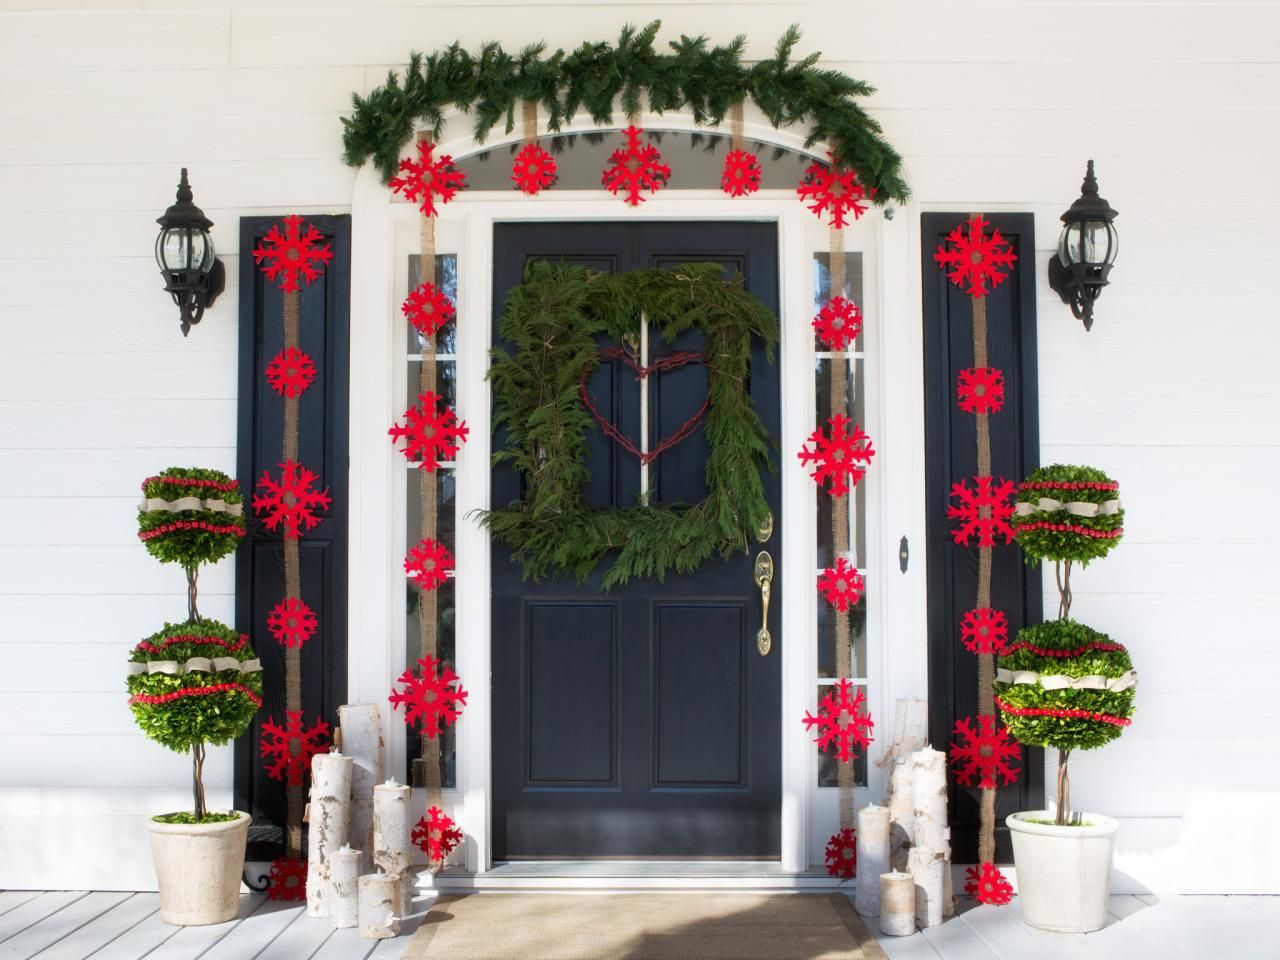 Outdoor Holiday Decorations Christmas Porch Decor Holiday Decor Christmas Outdoor Holiday Decor